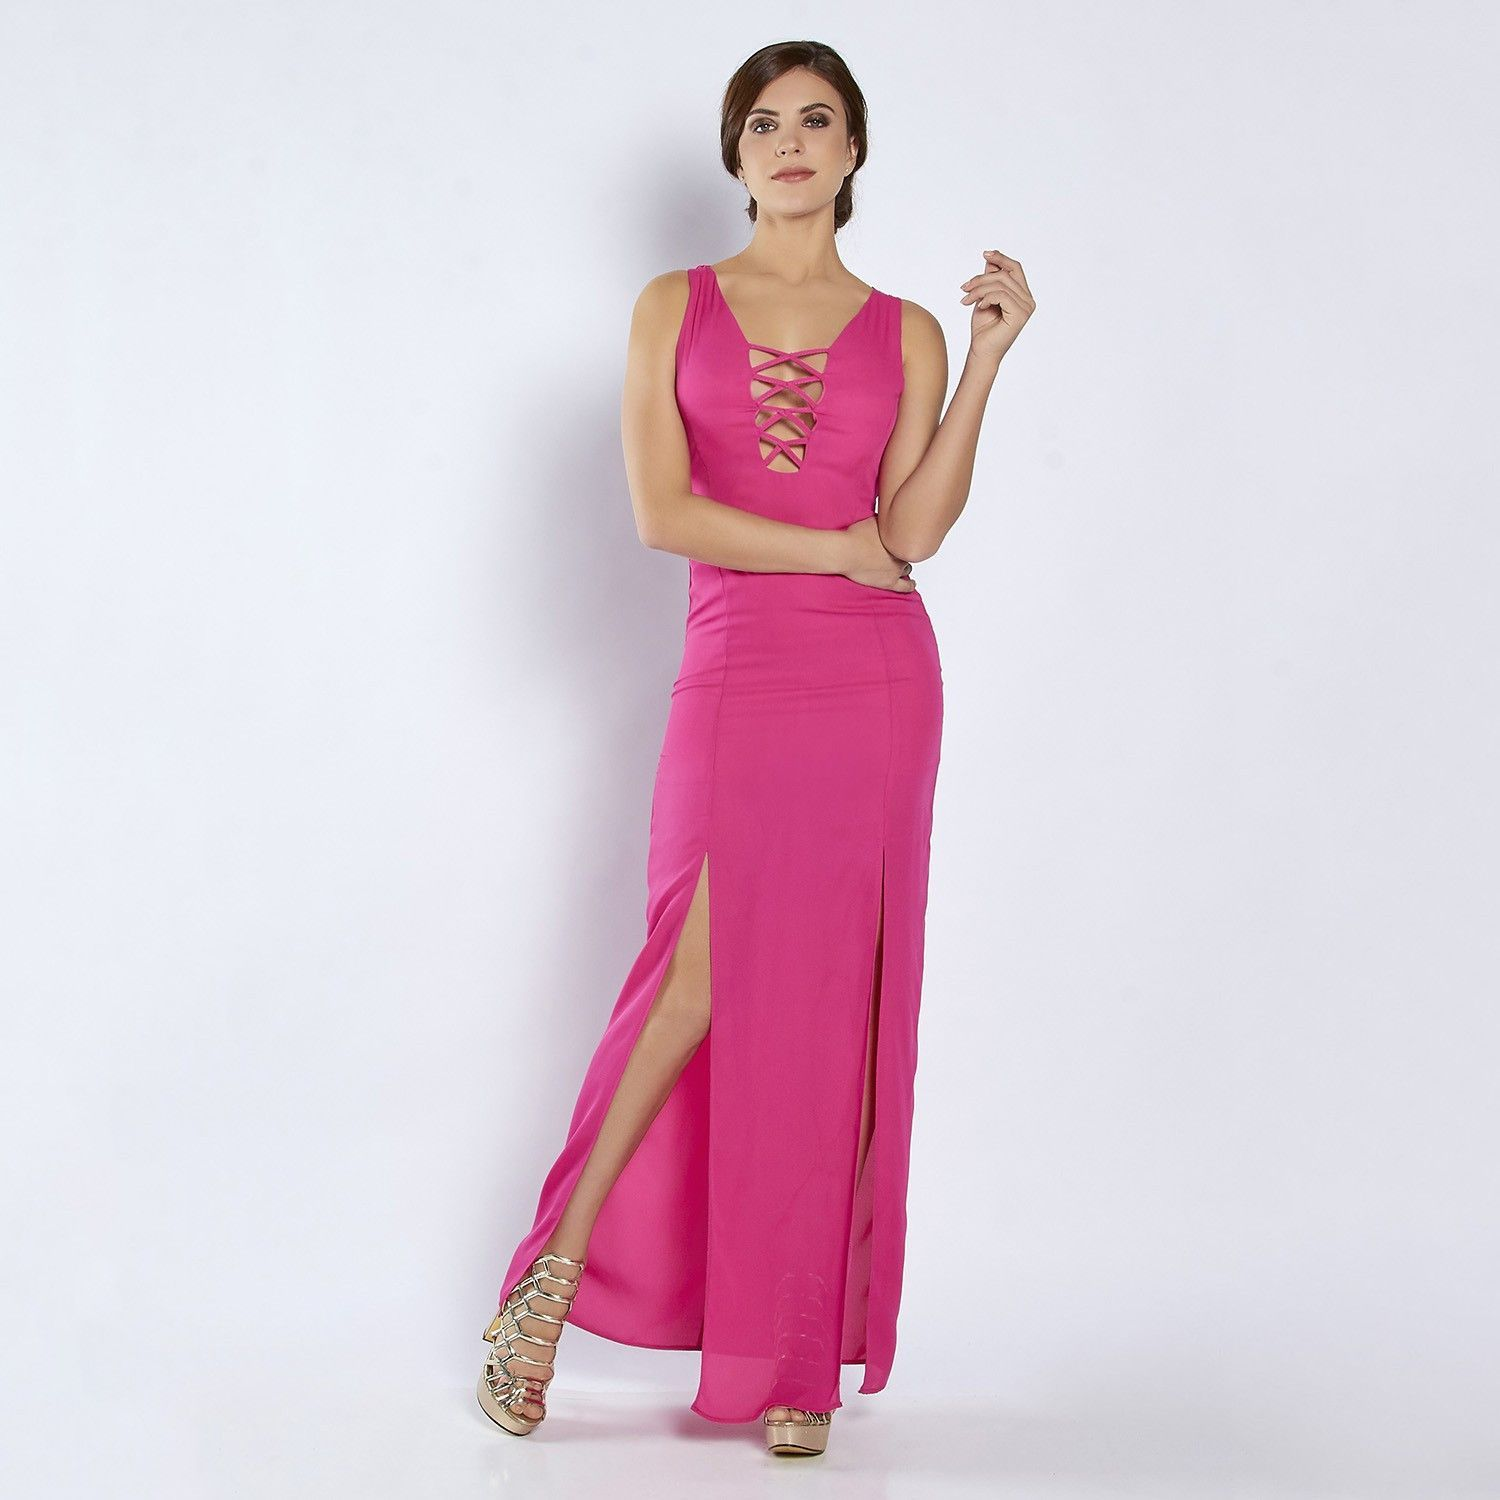 013-109 Vestido Dama Terra - Fiusha | Products | Pinterest | Damas